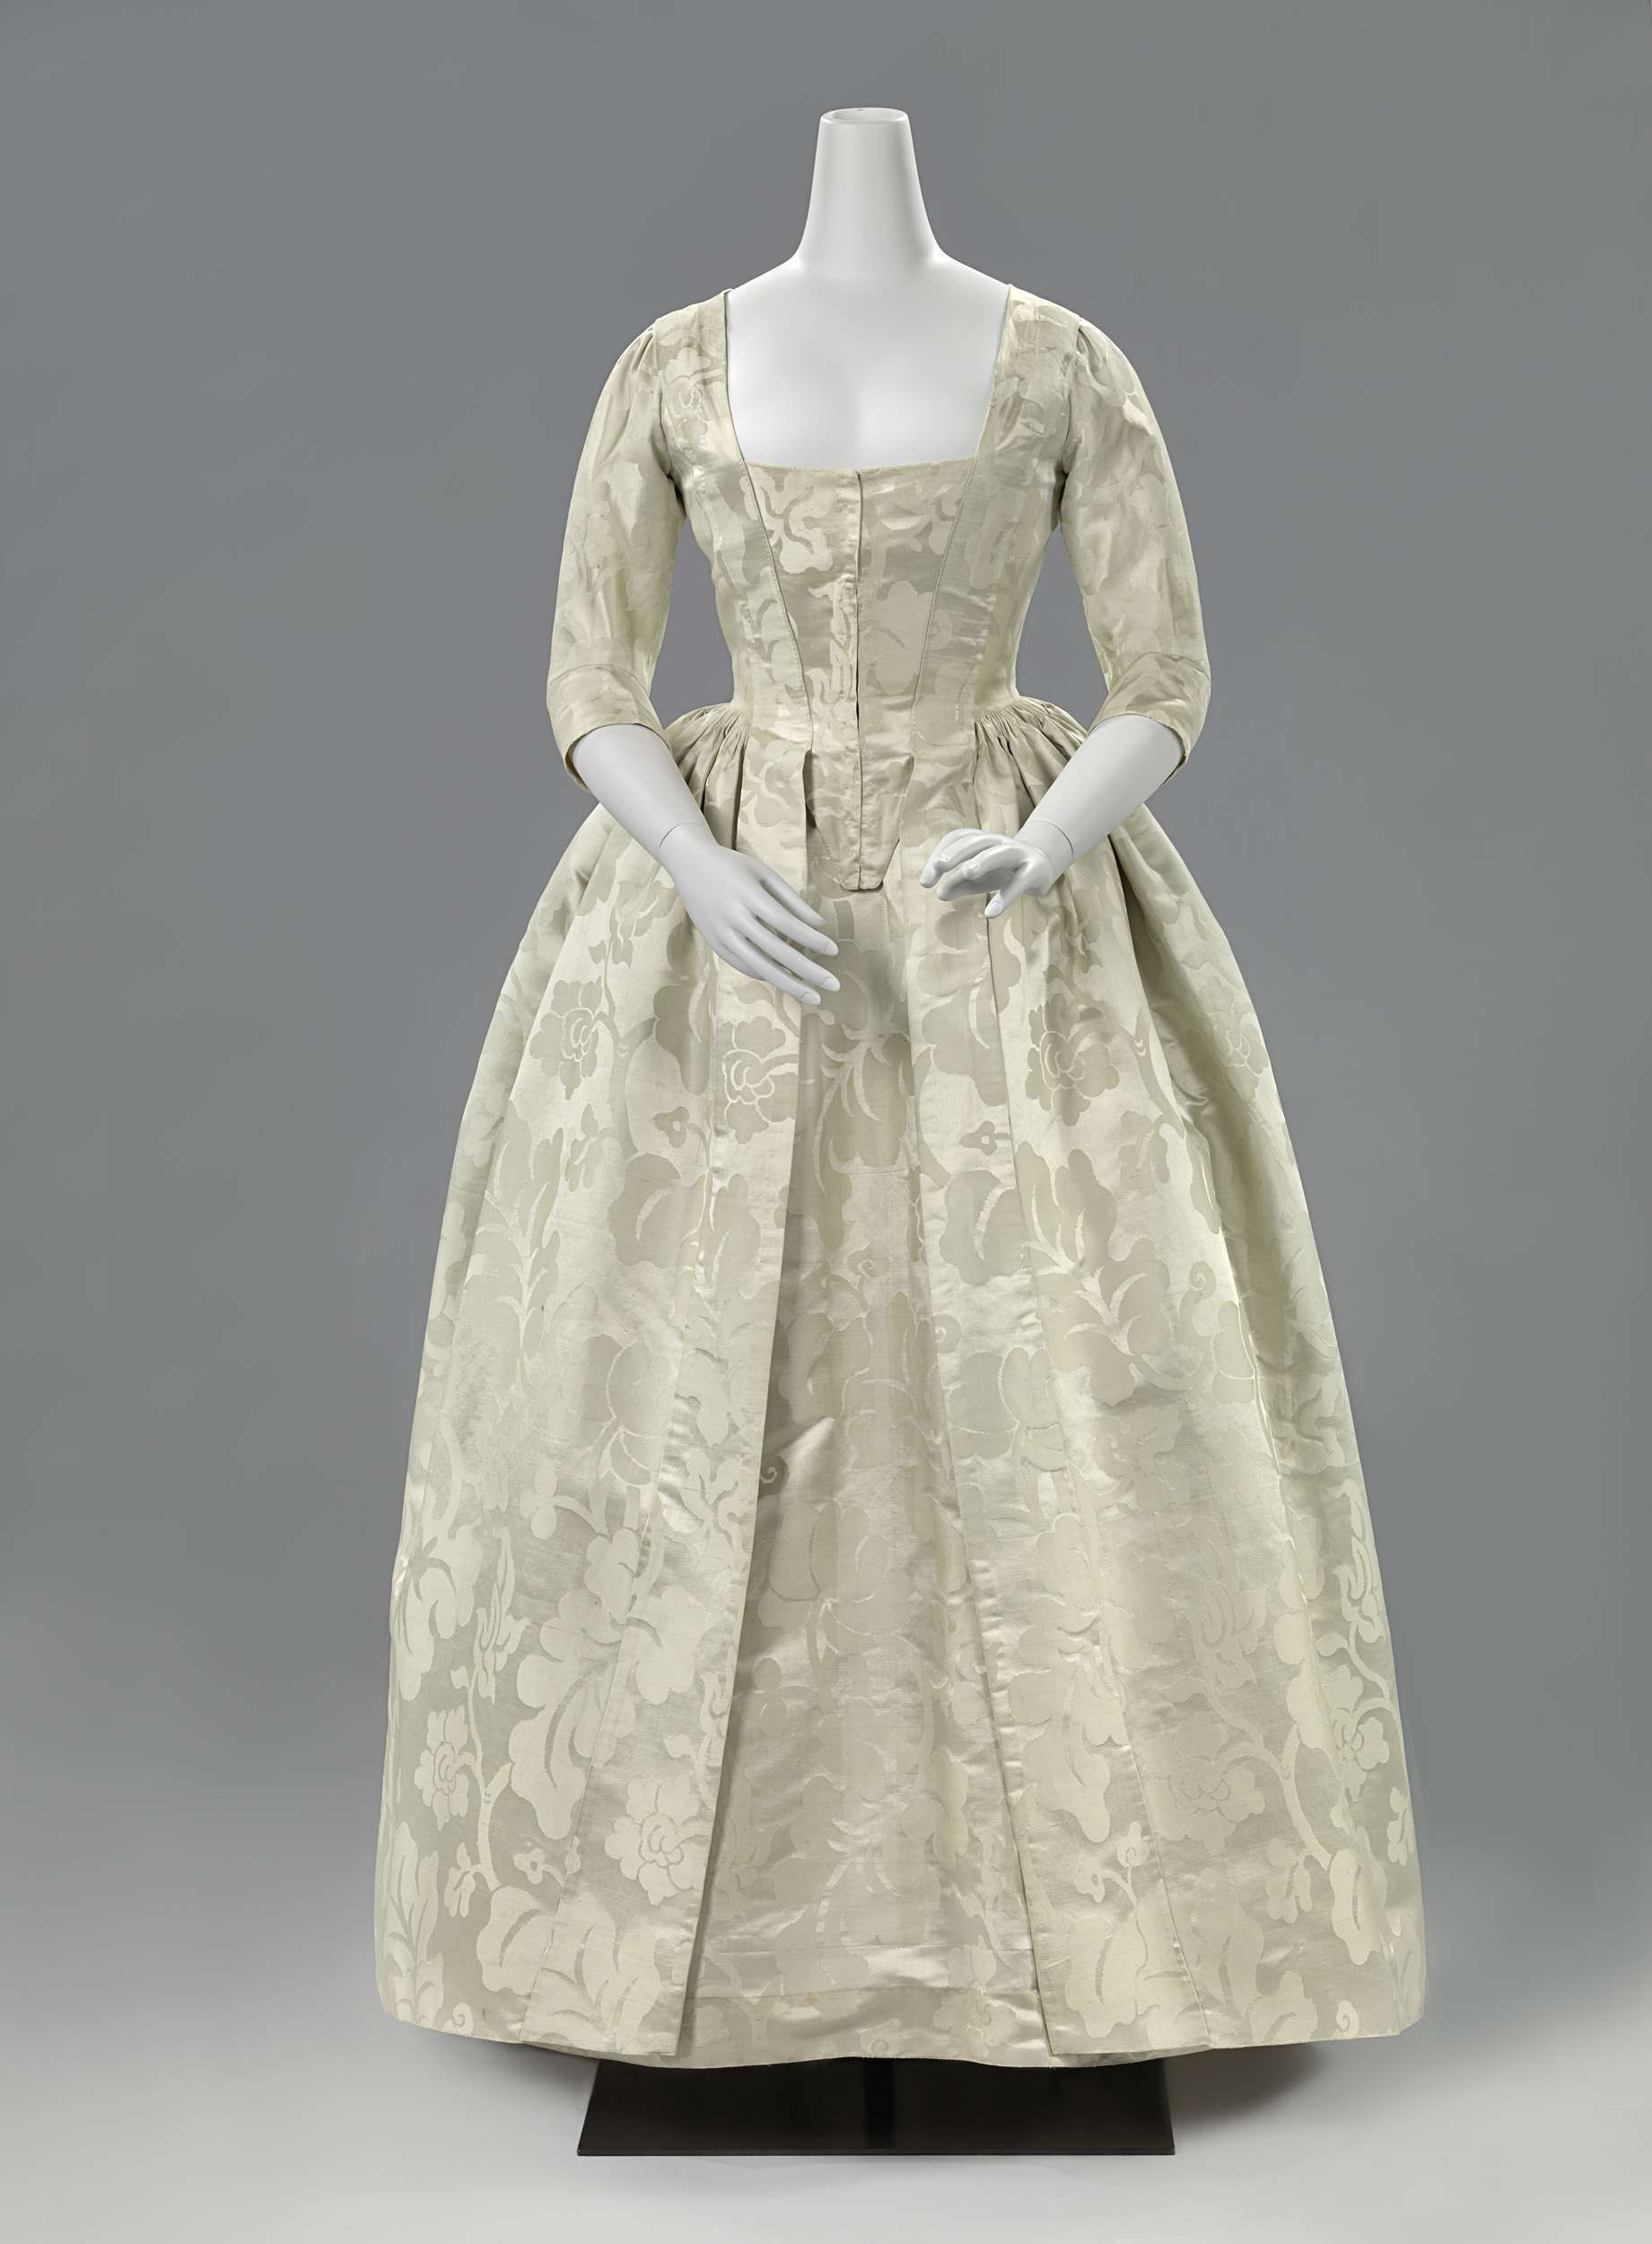 1770-1780 - Silk damask dress